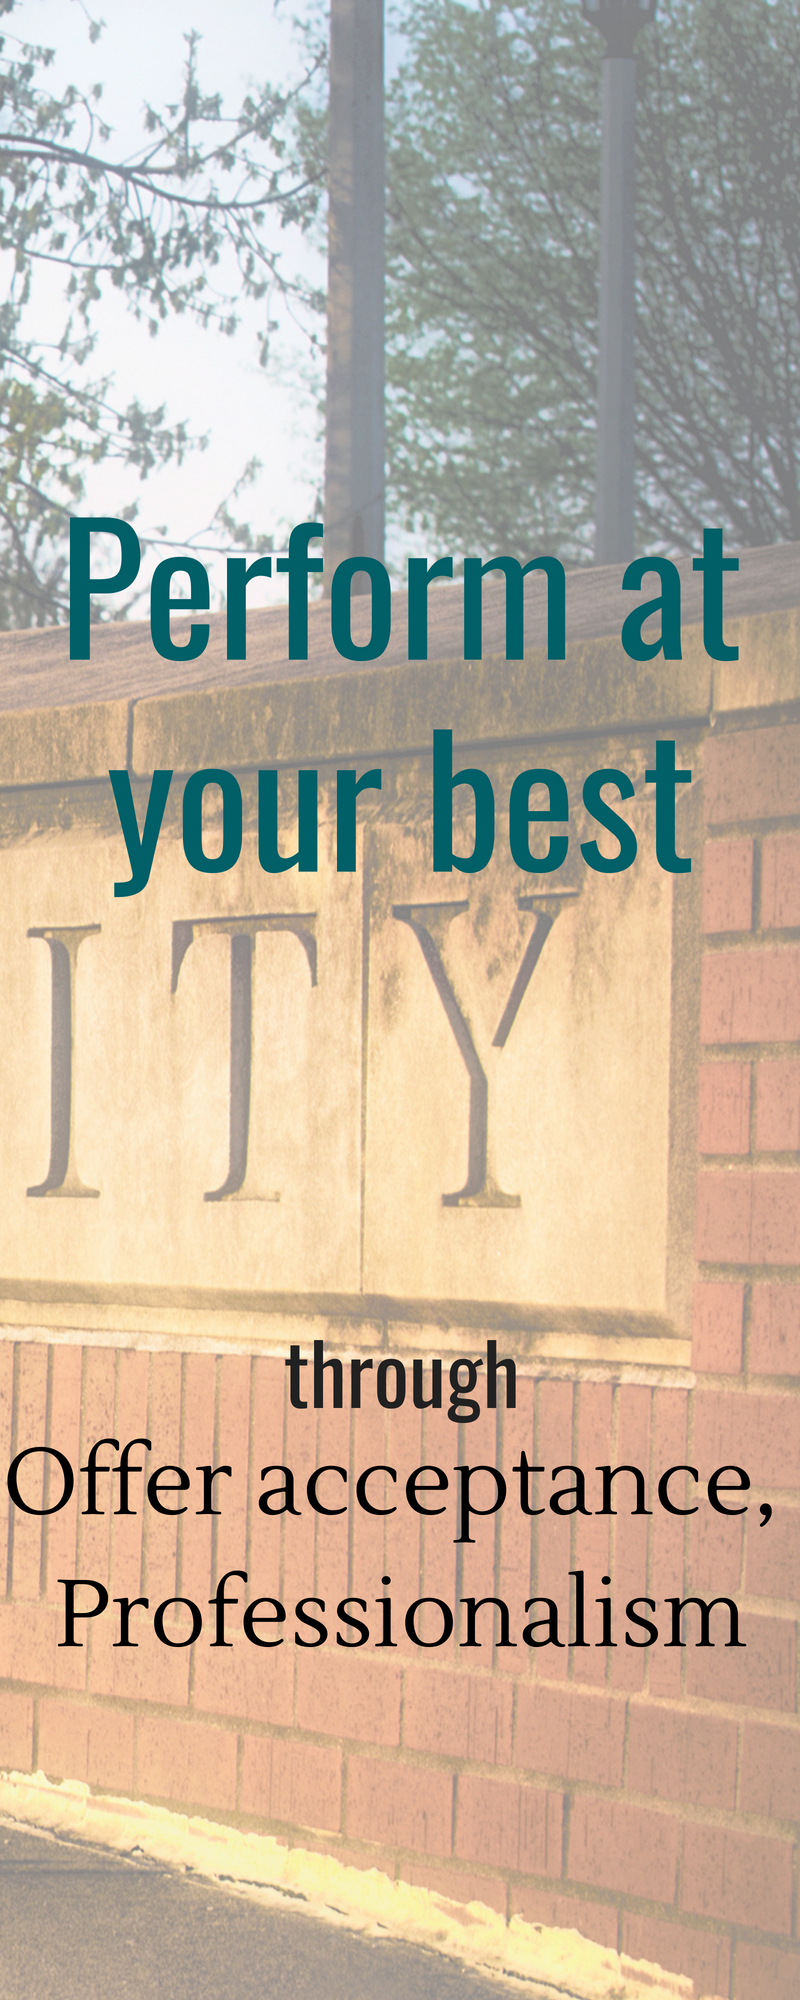 Perform at your best